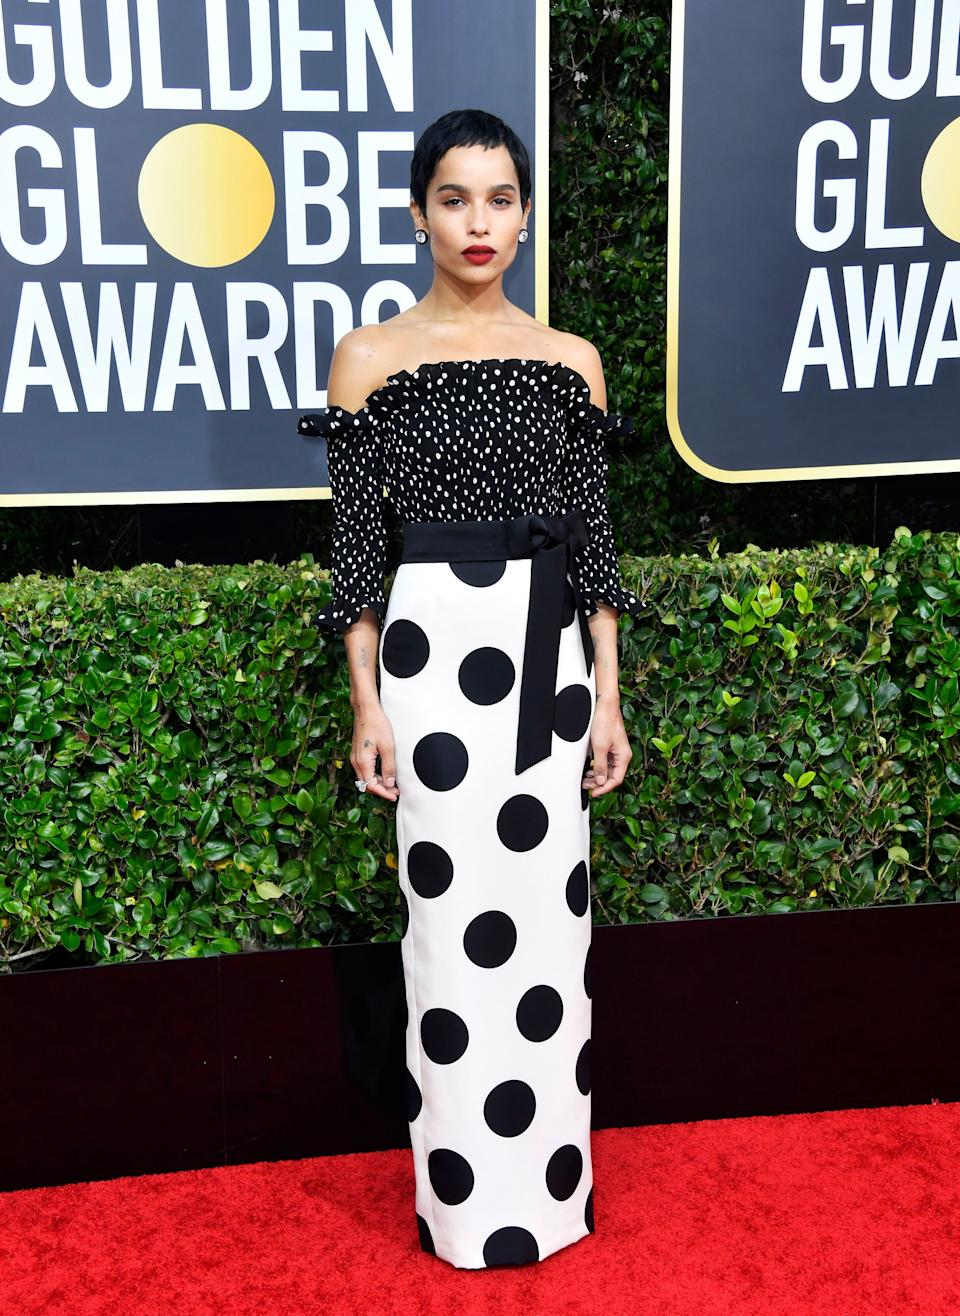 On anyone else, this would be overkill. But Zoë Kravitz pulls it off.